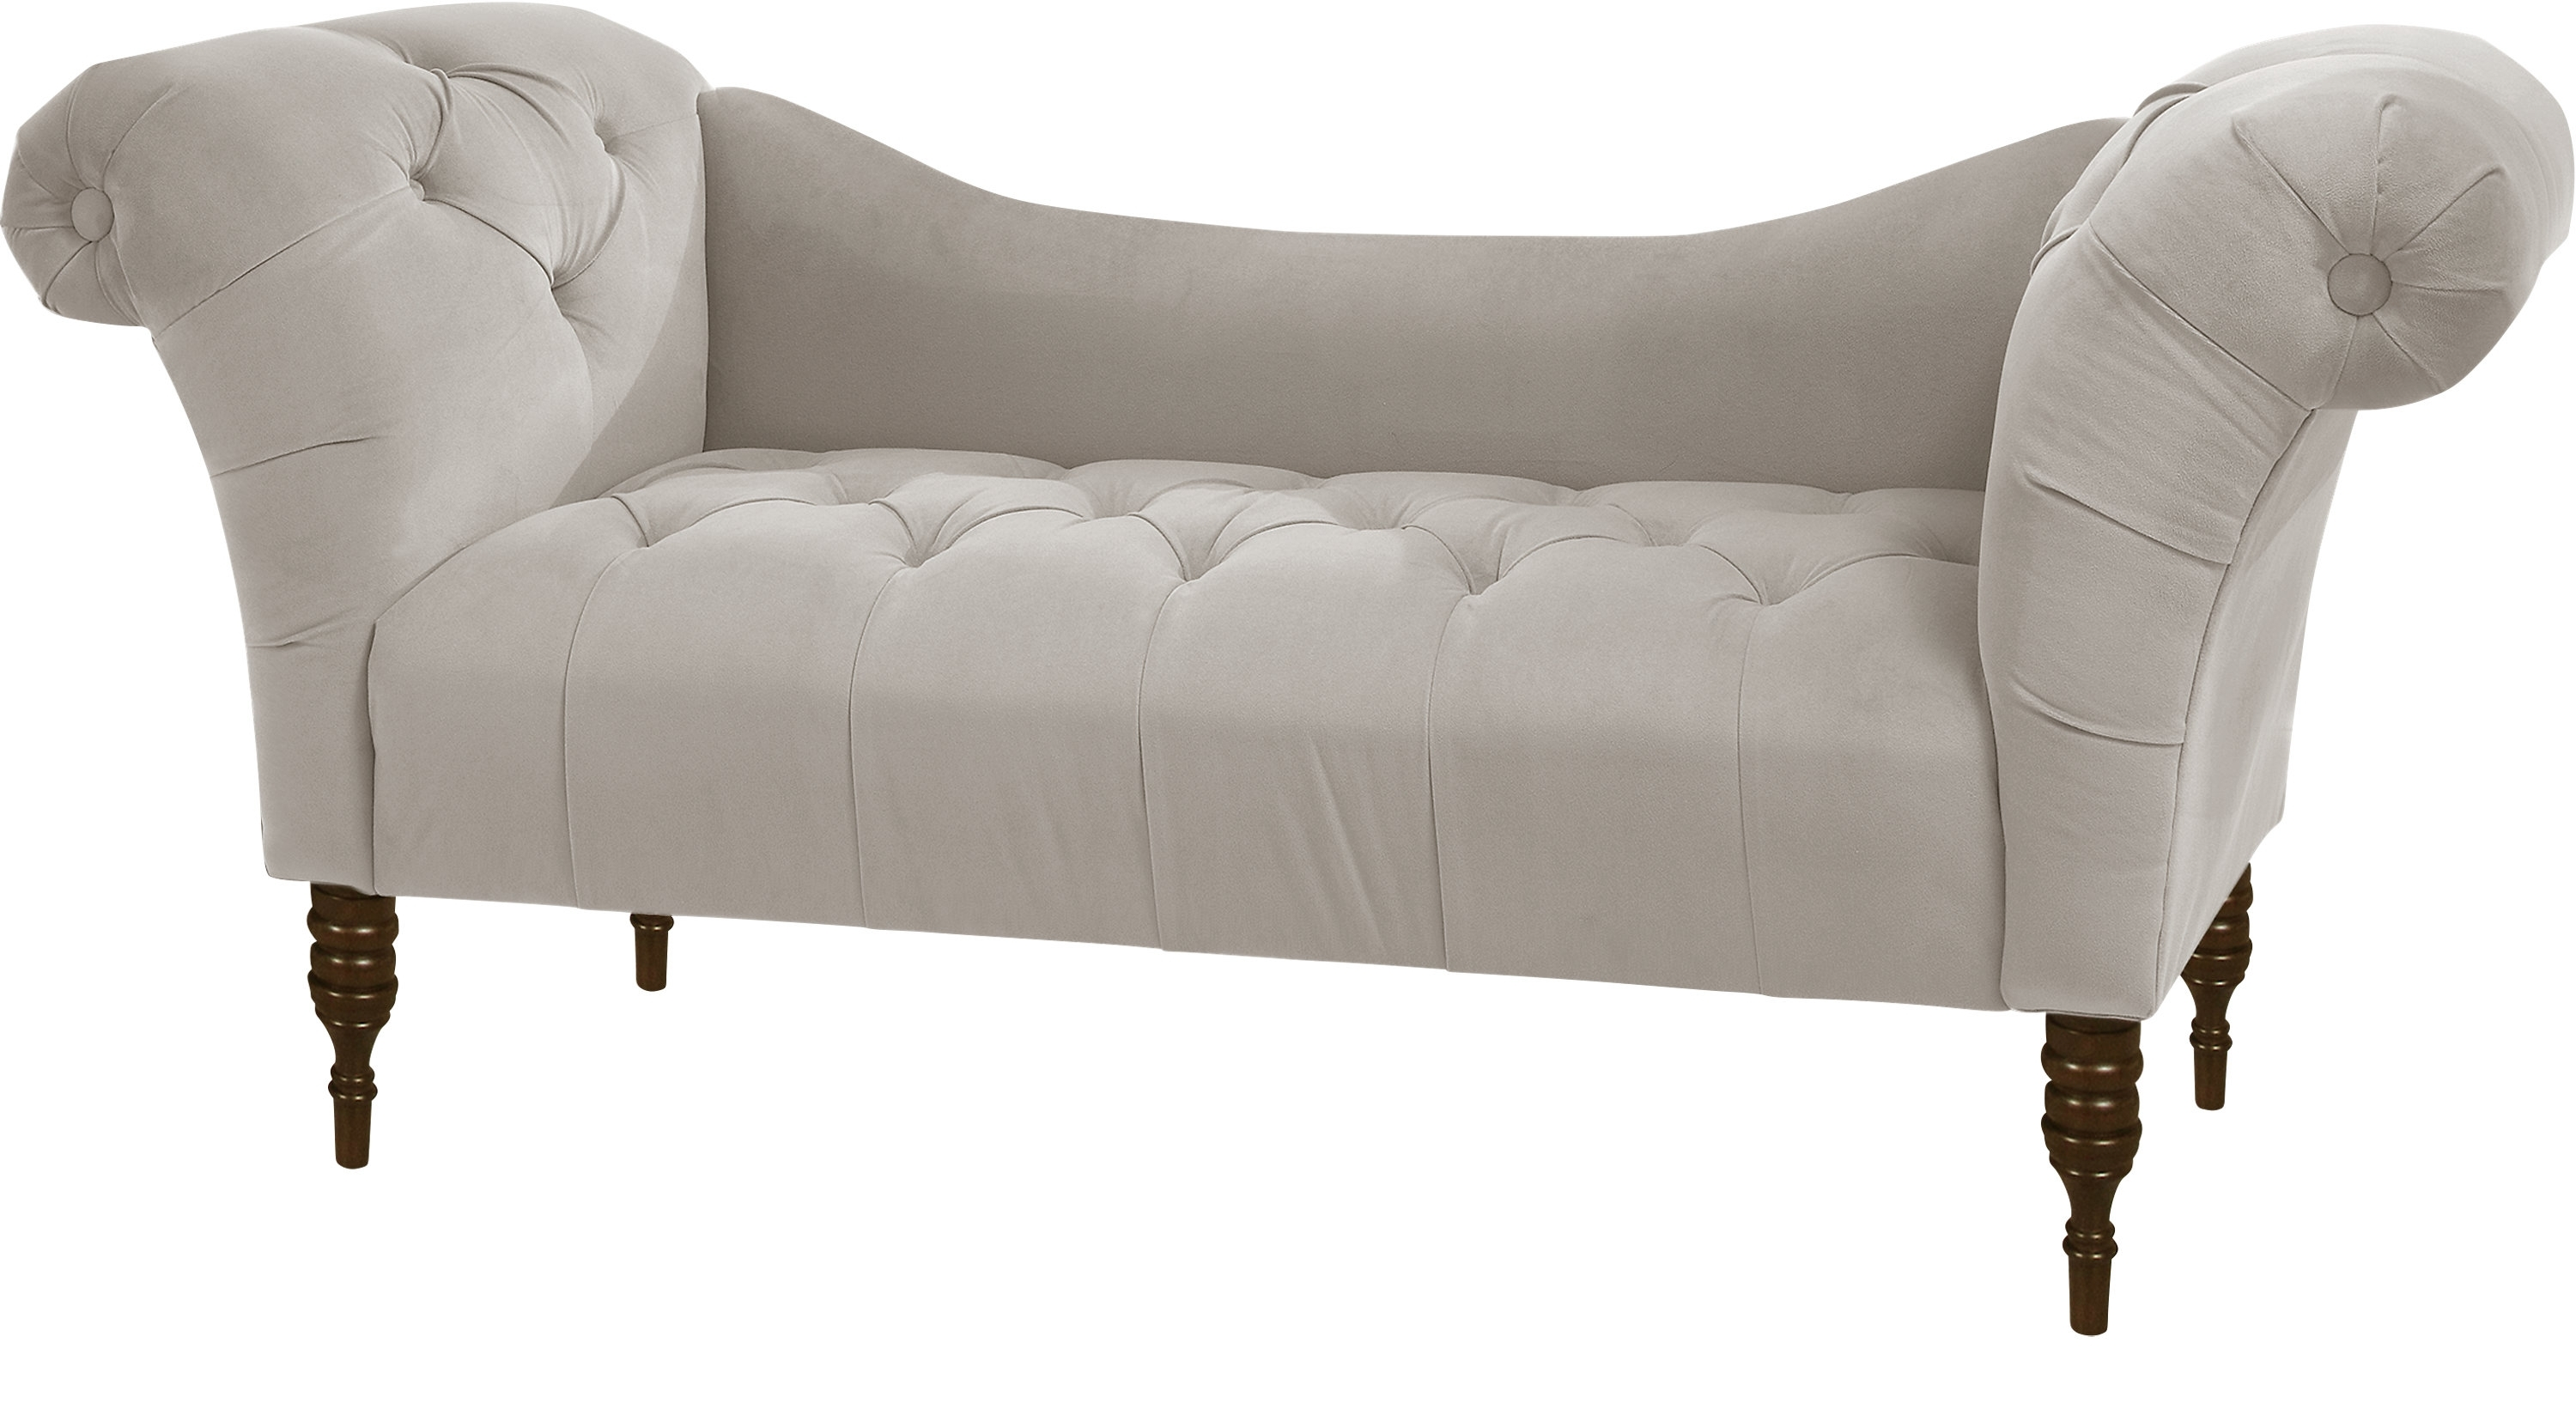 Emily Chaises With Regard To Well Liked Chaises – Chaise Lounge Sofas (View 14 of 15)